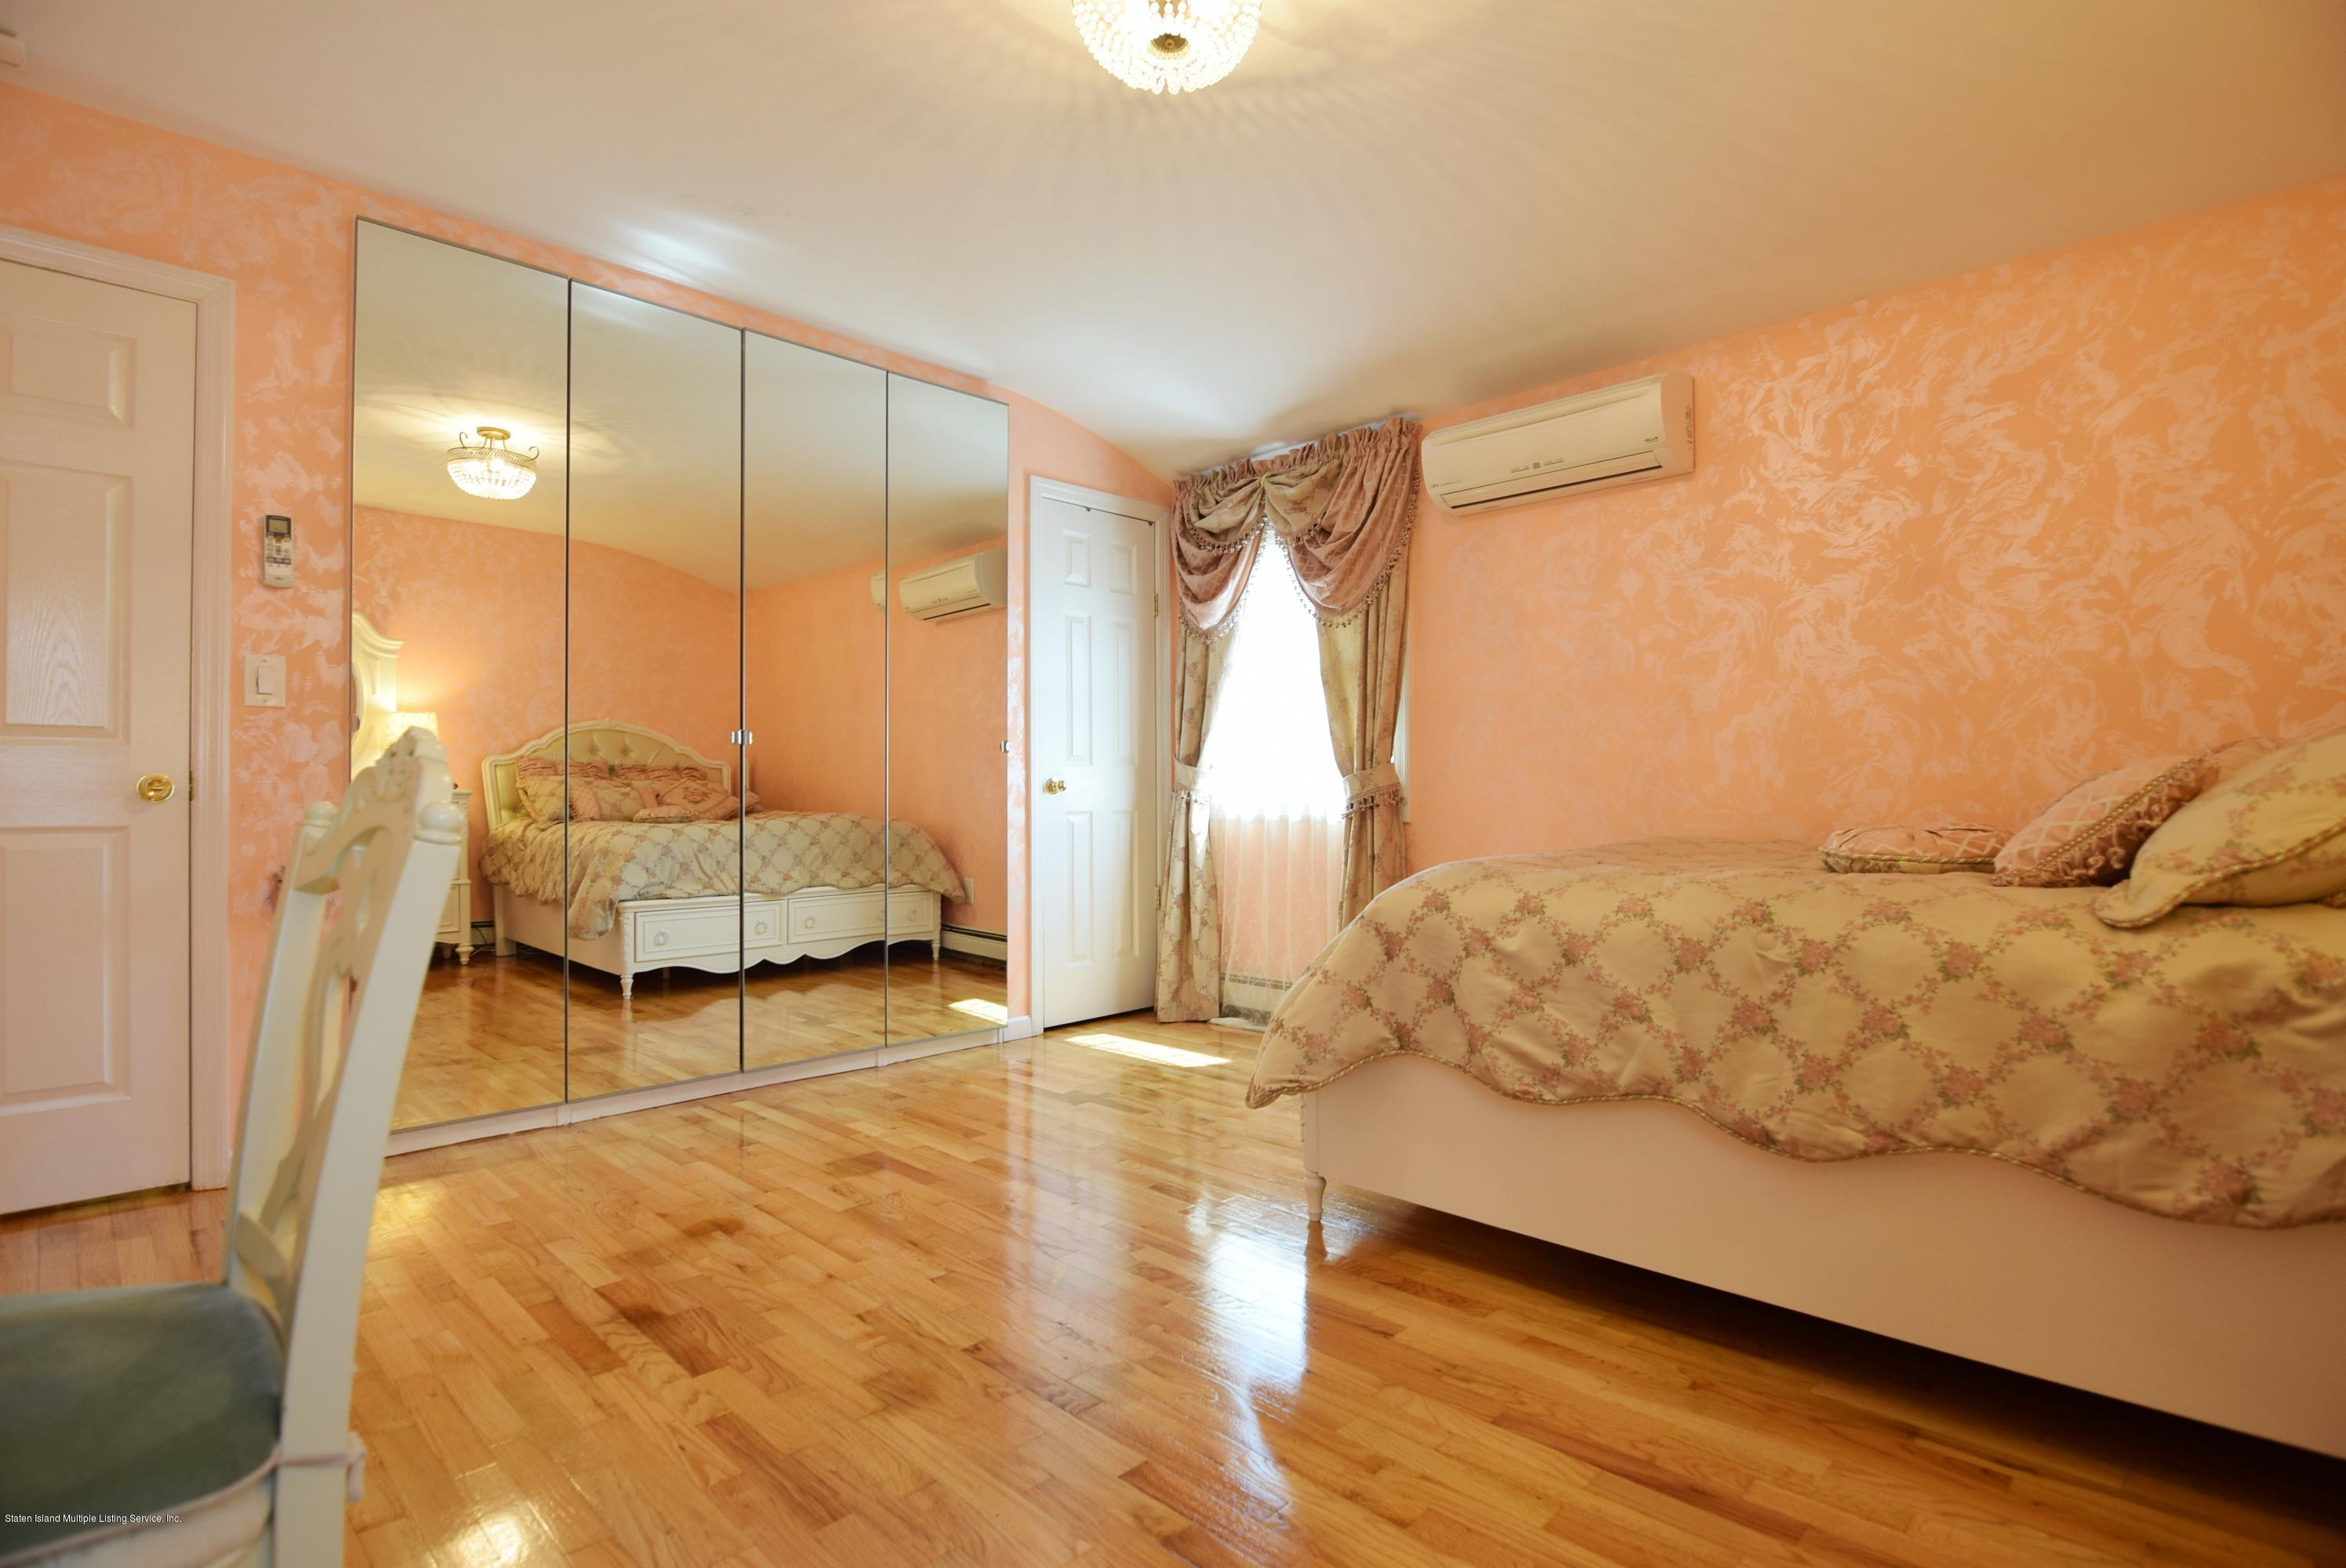 549 Mill Road,Staten Island,New York,10306,United States,5 Bedrooms Bedrooms,8 Rooms Rooms,4 BathroomsBathrooms,Residential,Mill,1129095